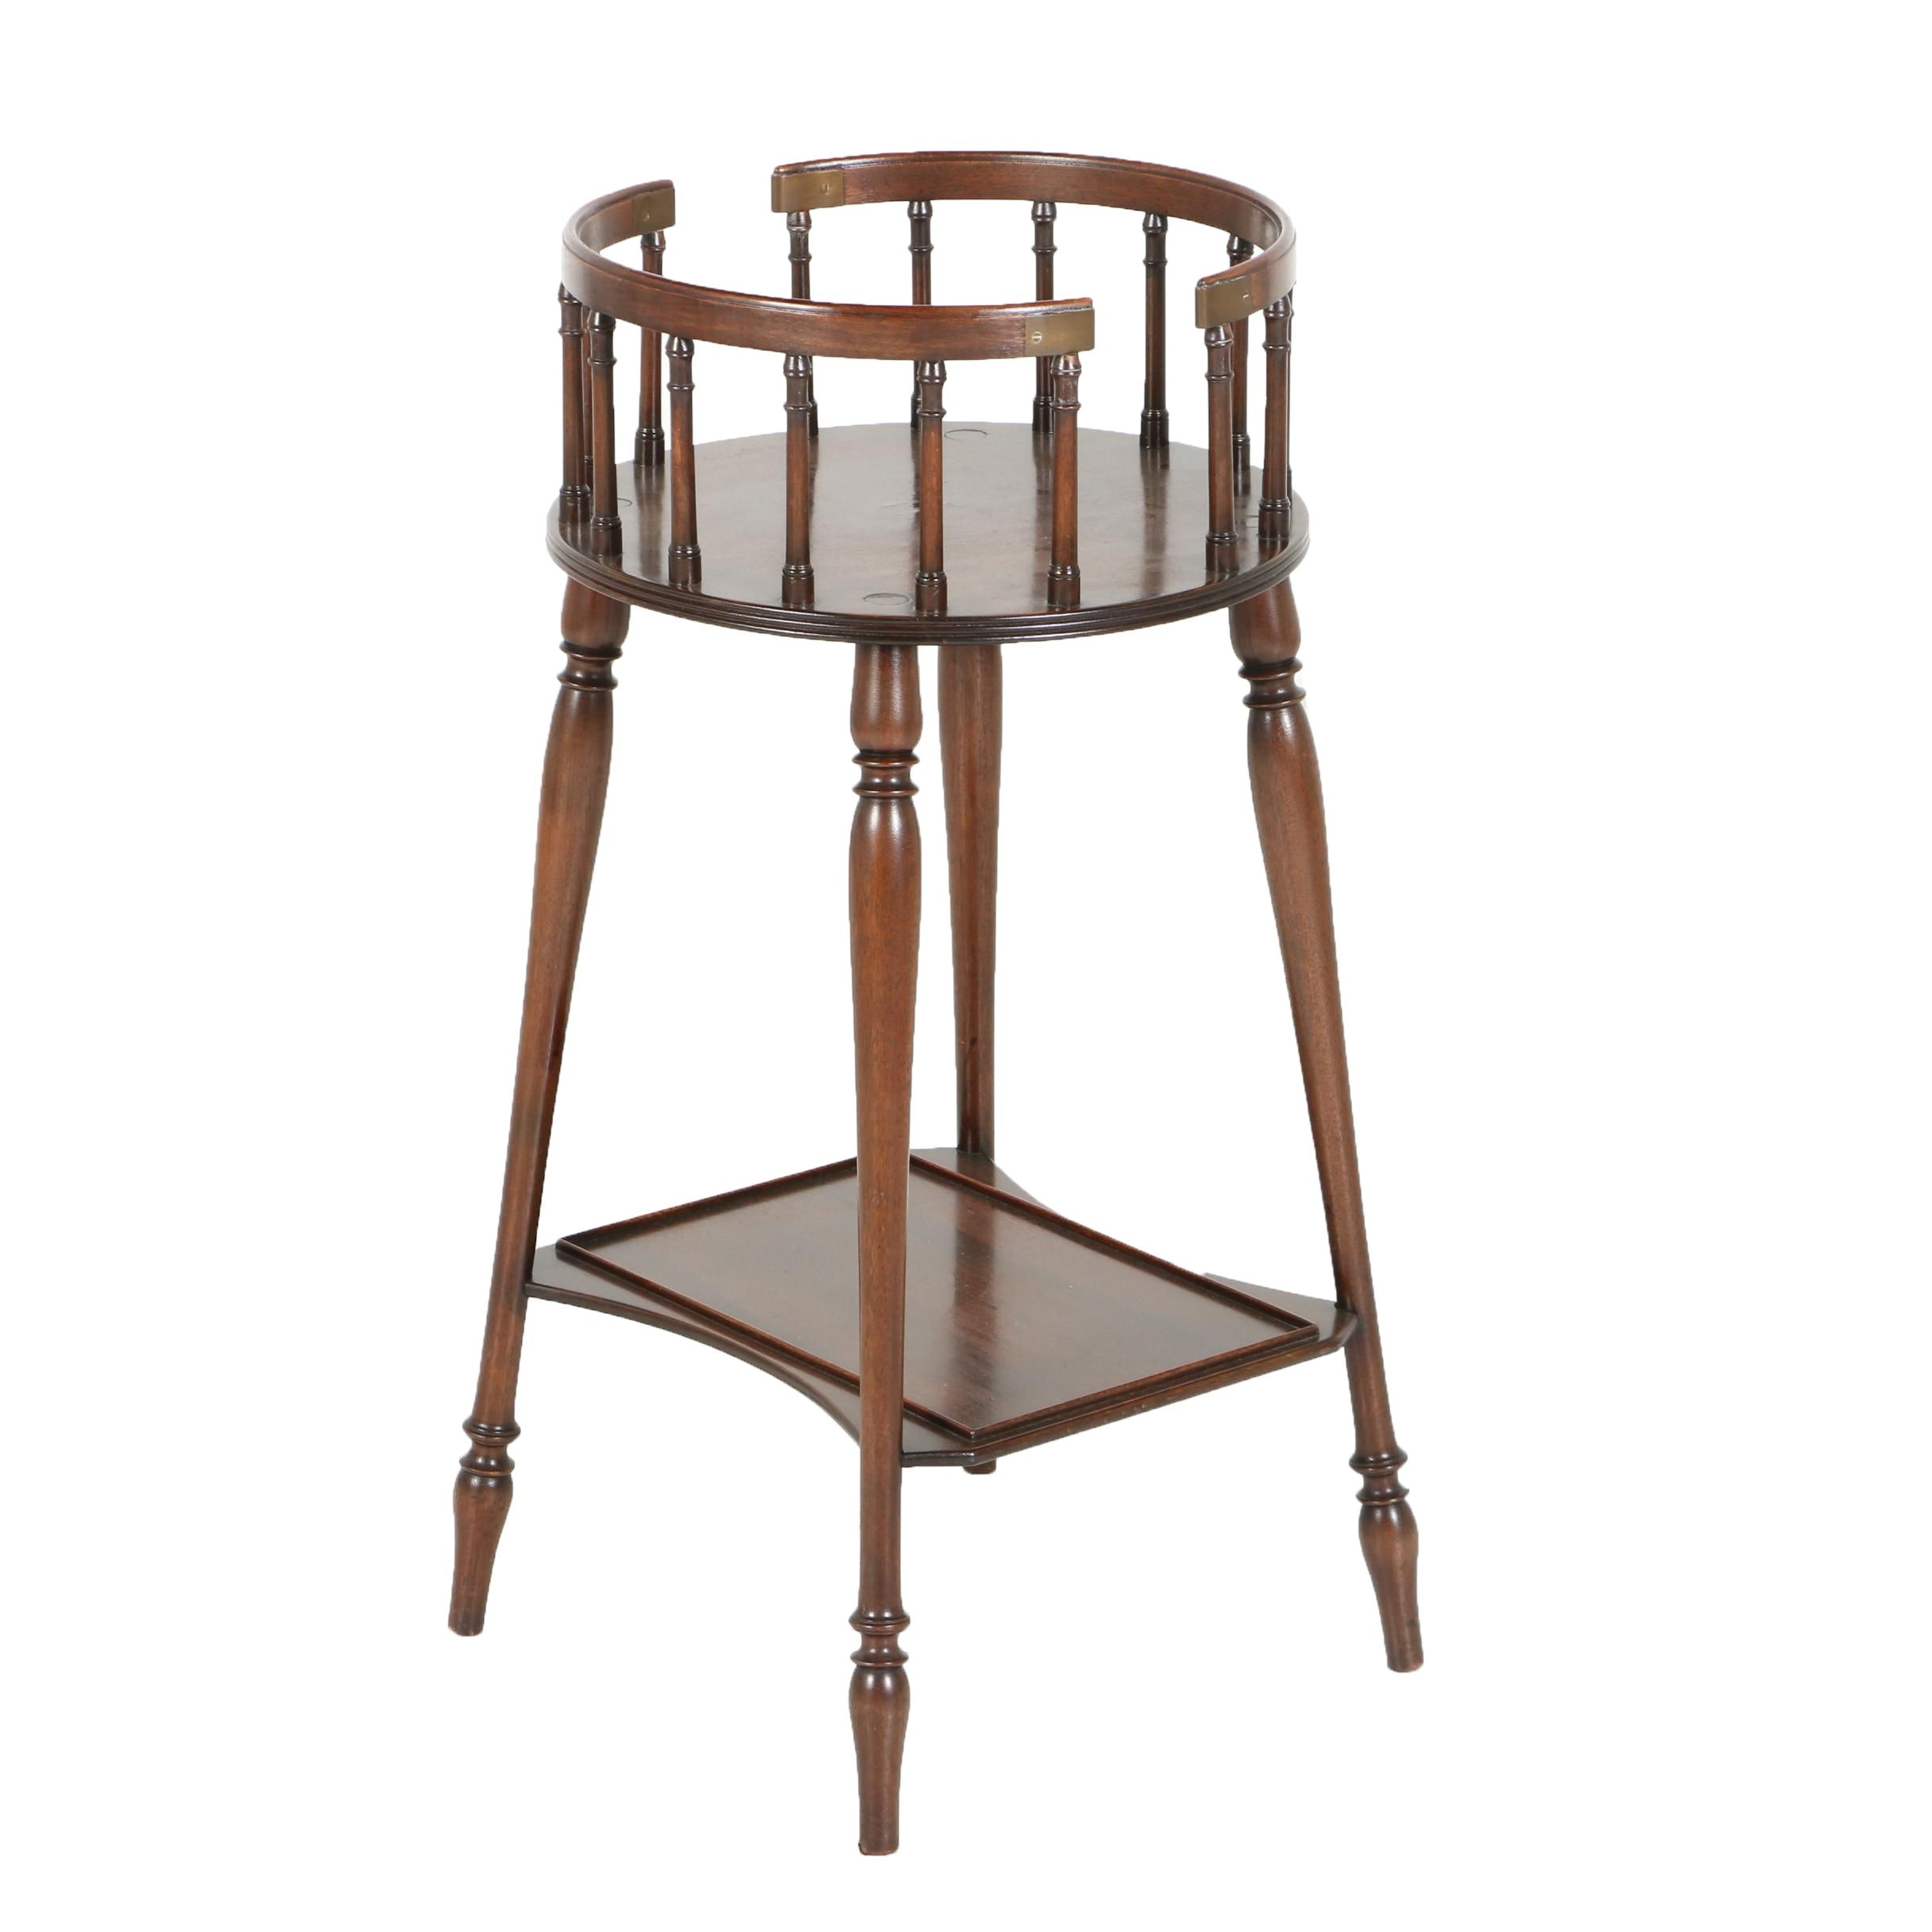 Federal Style Mahogany Two-Tier Plant Stand by Watson & Boaler, 20th Century